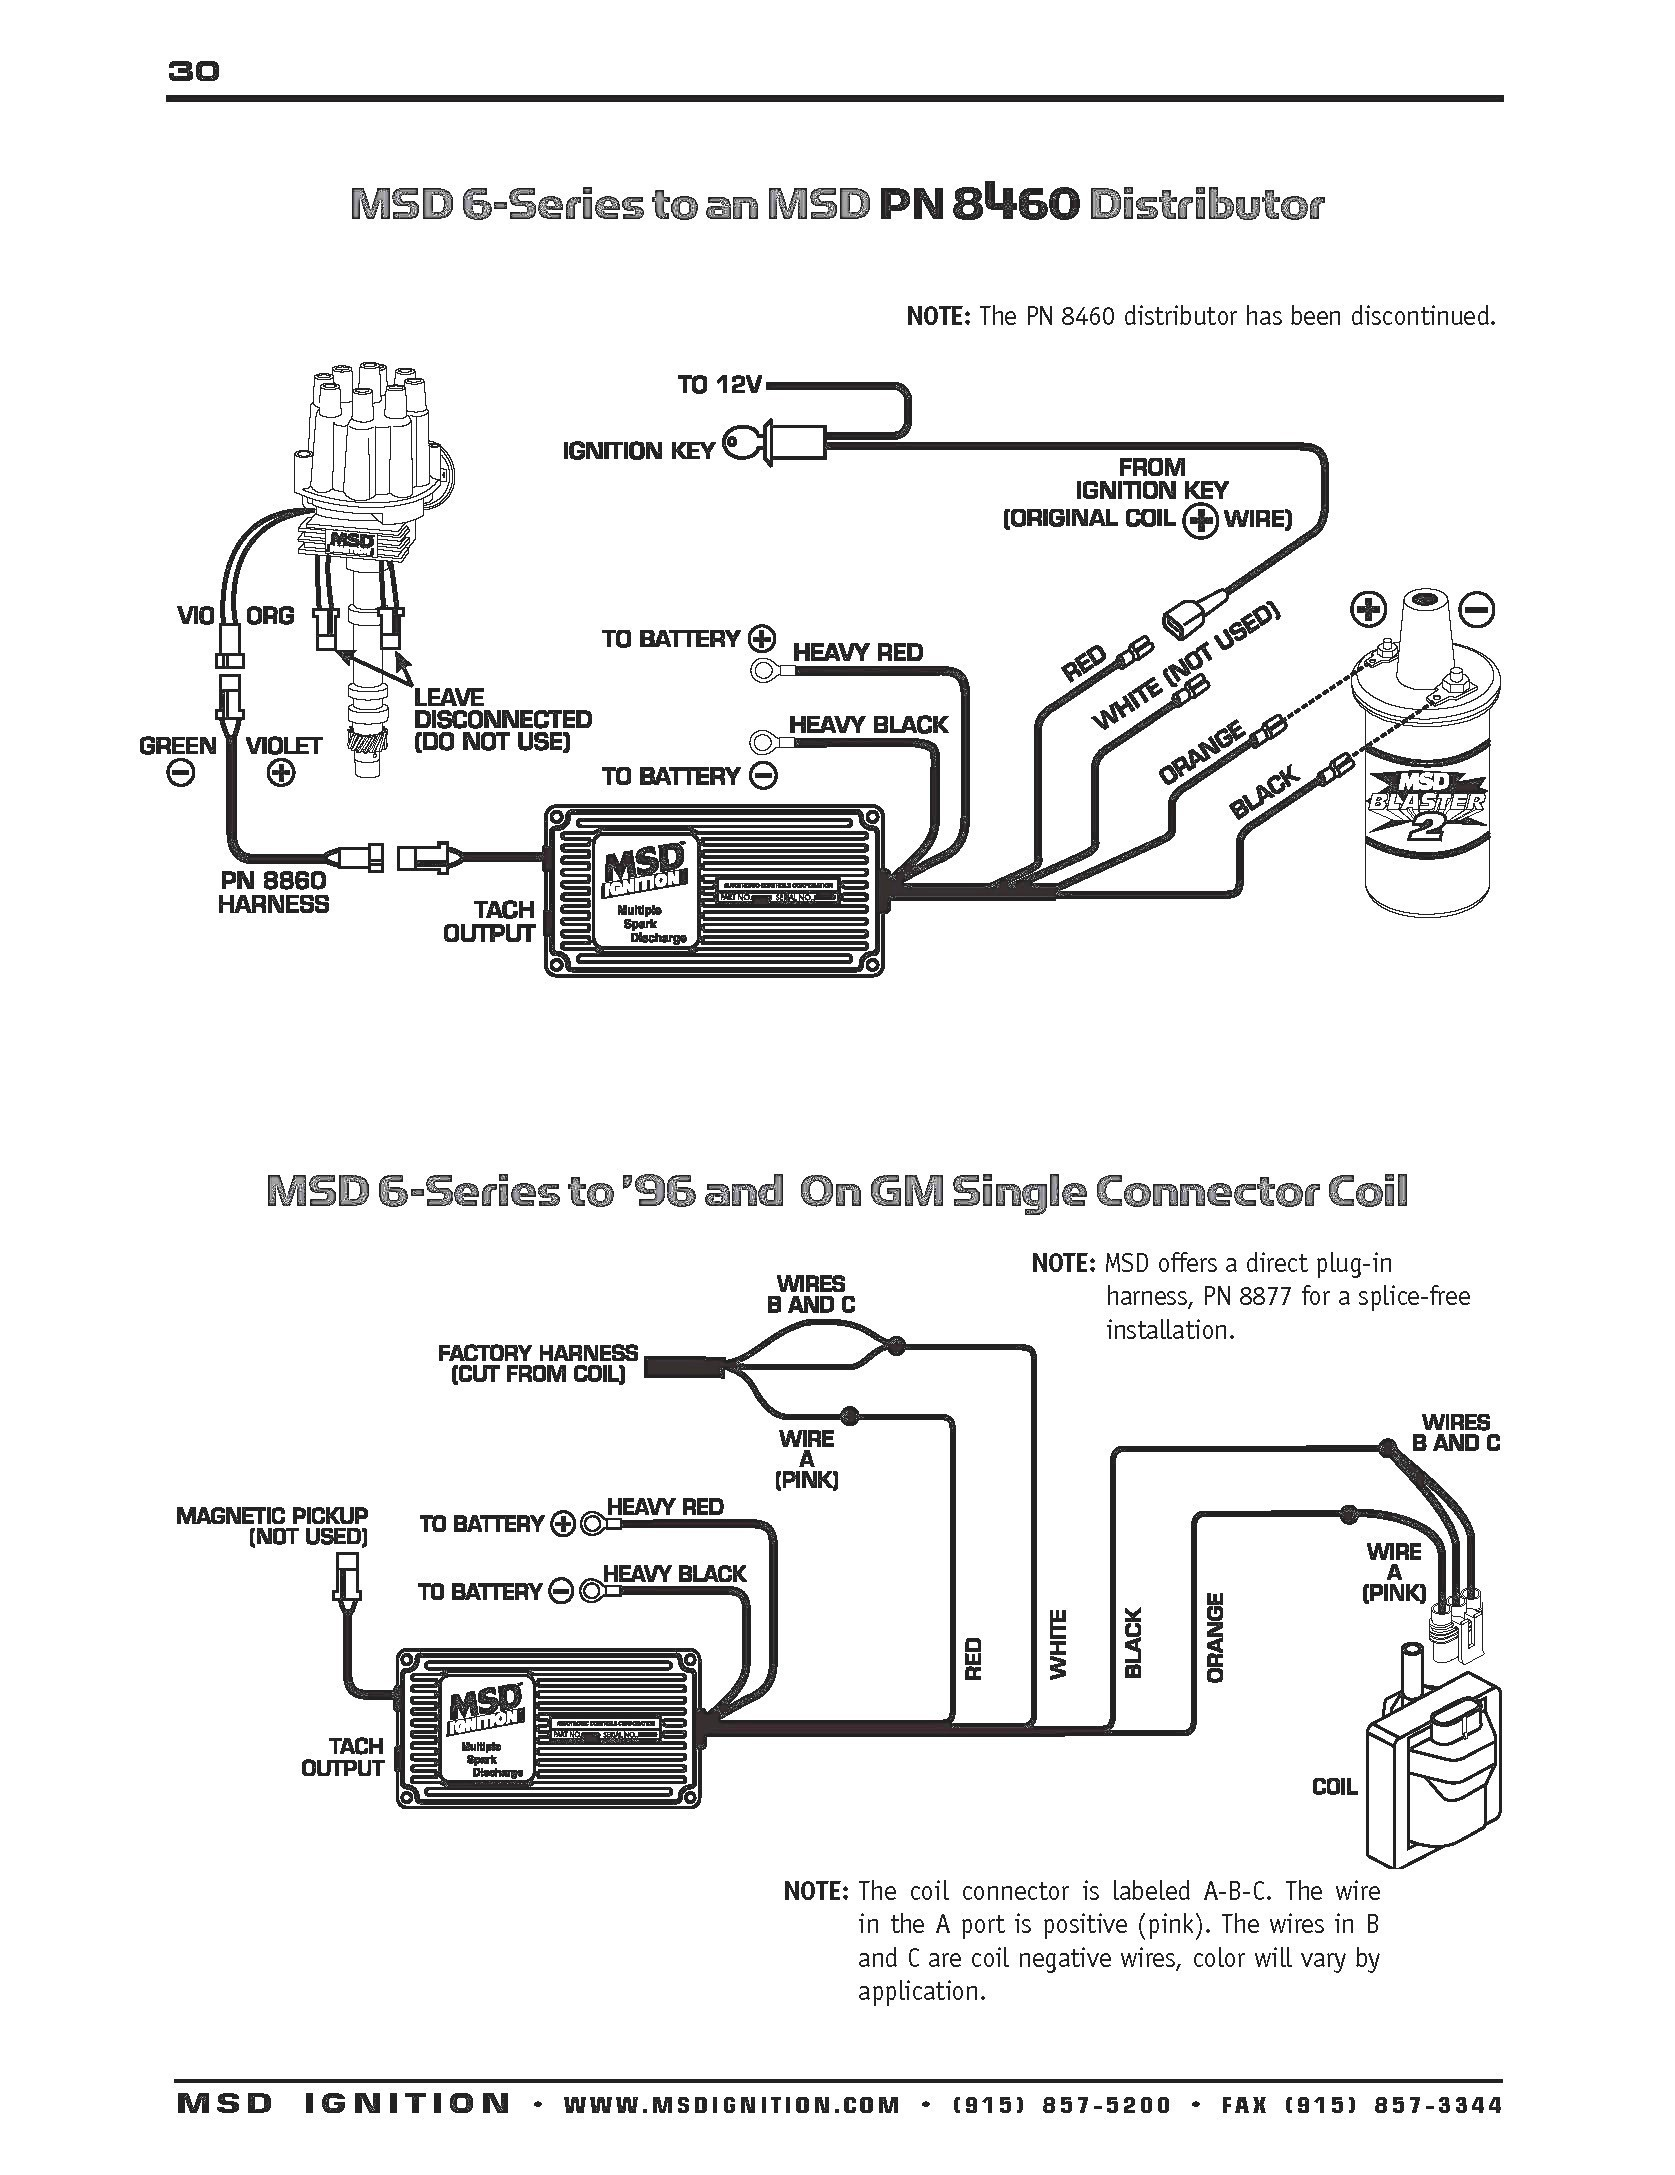 msd 5200 wiring diagram ignition electrical drawing wiring diagram u2022 rh g news co Diagram Wiring